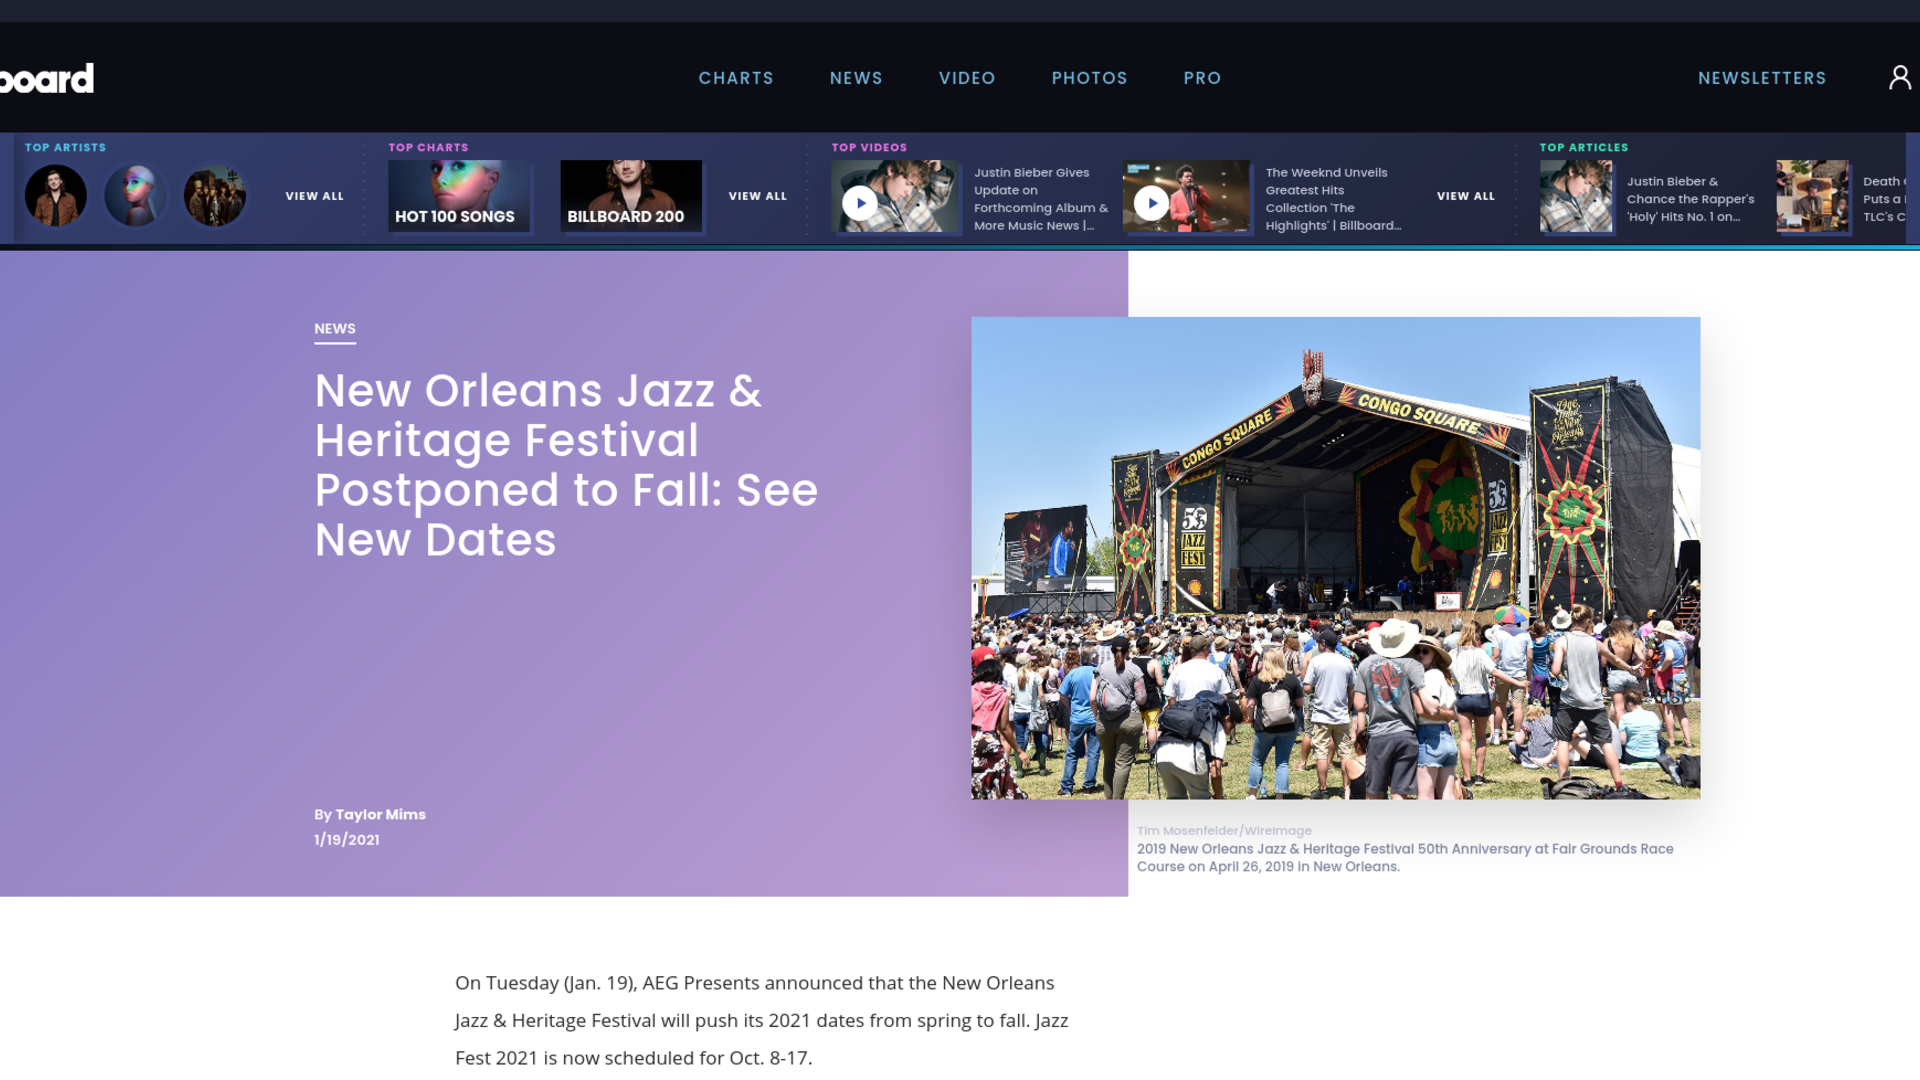 Fairness Rocks News New Orleans Jazz & Heritage Festival Postponed to Fall: See New Dates